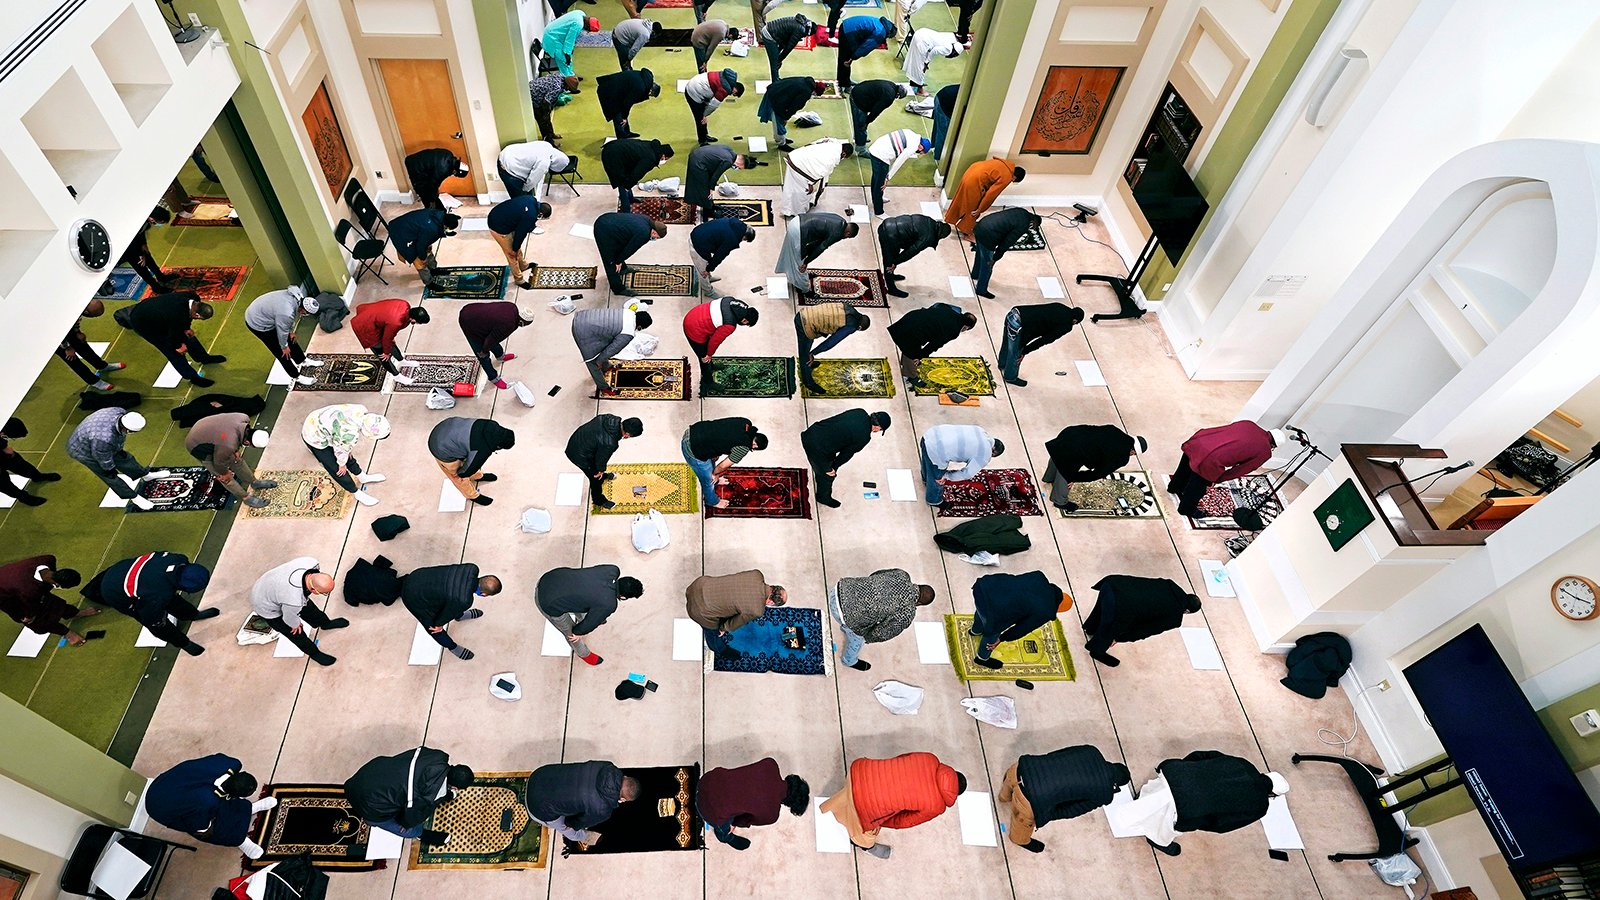 Worshippers, socially distanced due to COVID-19 concerns, bow in prayer at the Islamic Society of Boston during the first Friday of the holy month of Ramadan, April 16, 2021, in Boston. (AP Photo/Charles Krupa)